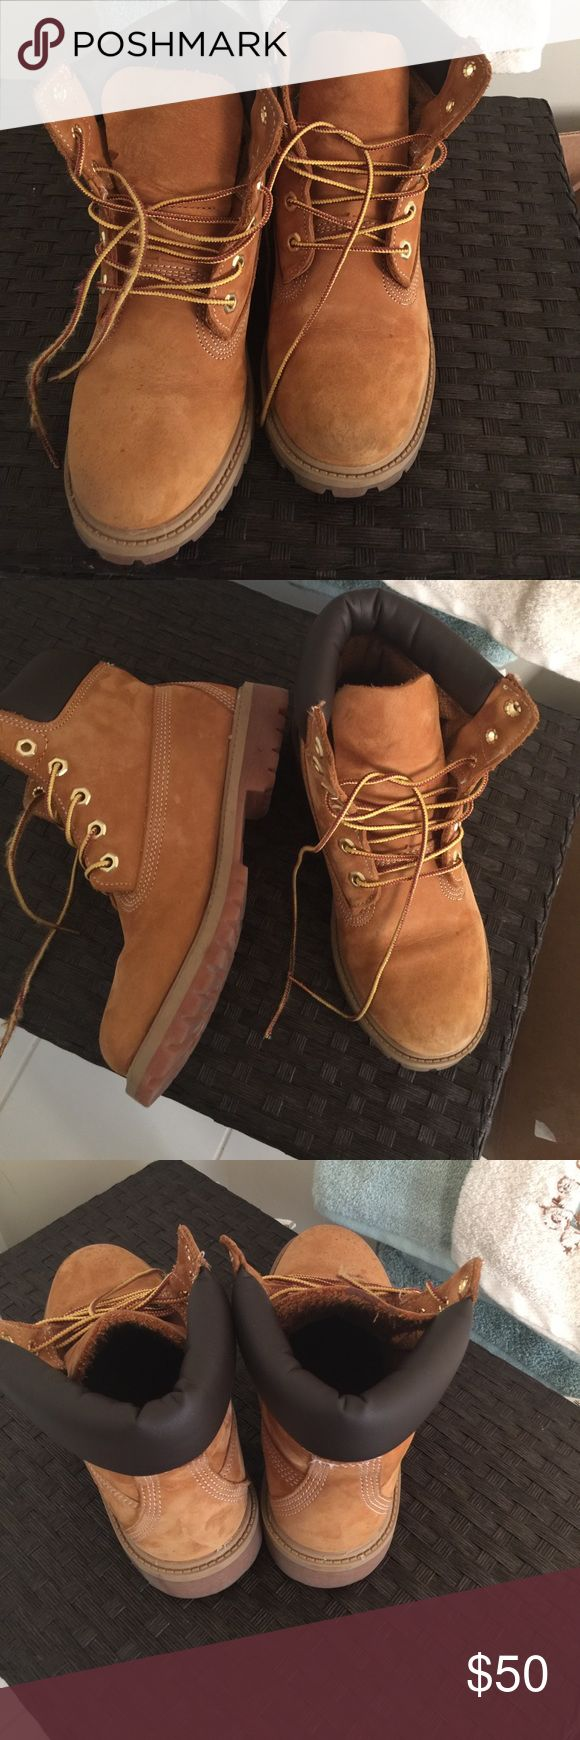 Kids wheat Timberlands Wheat Timberland boots Shoes Boots